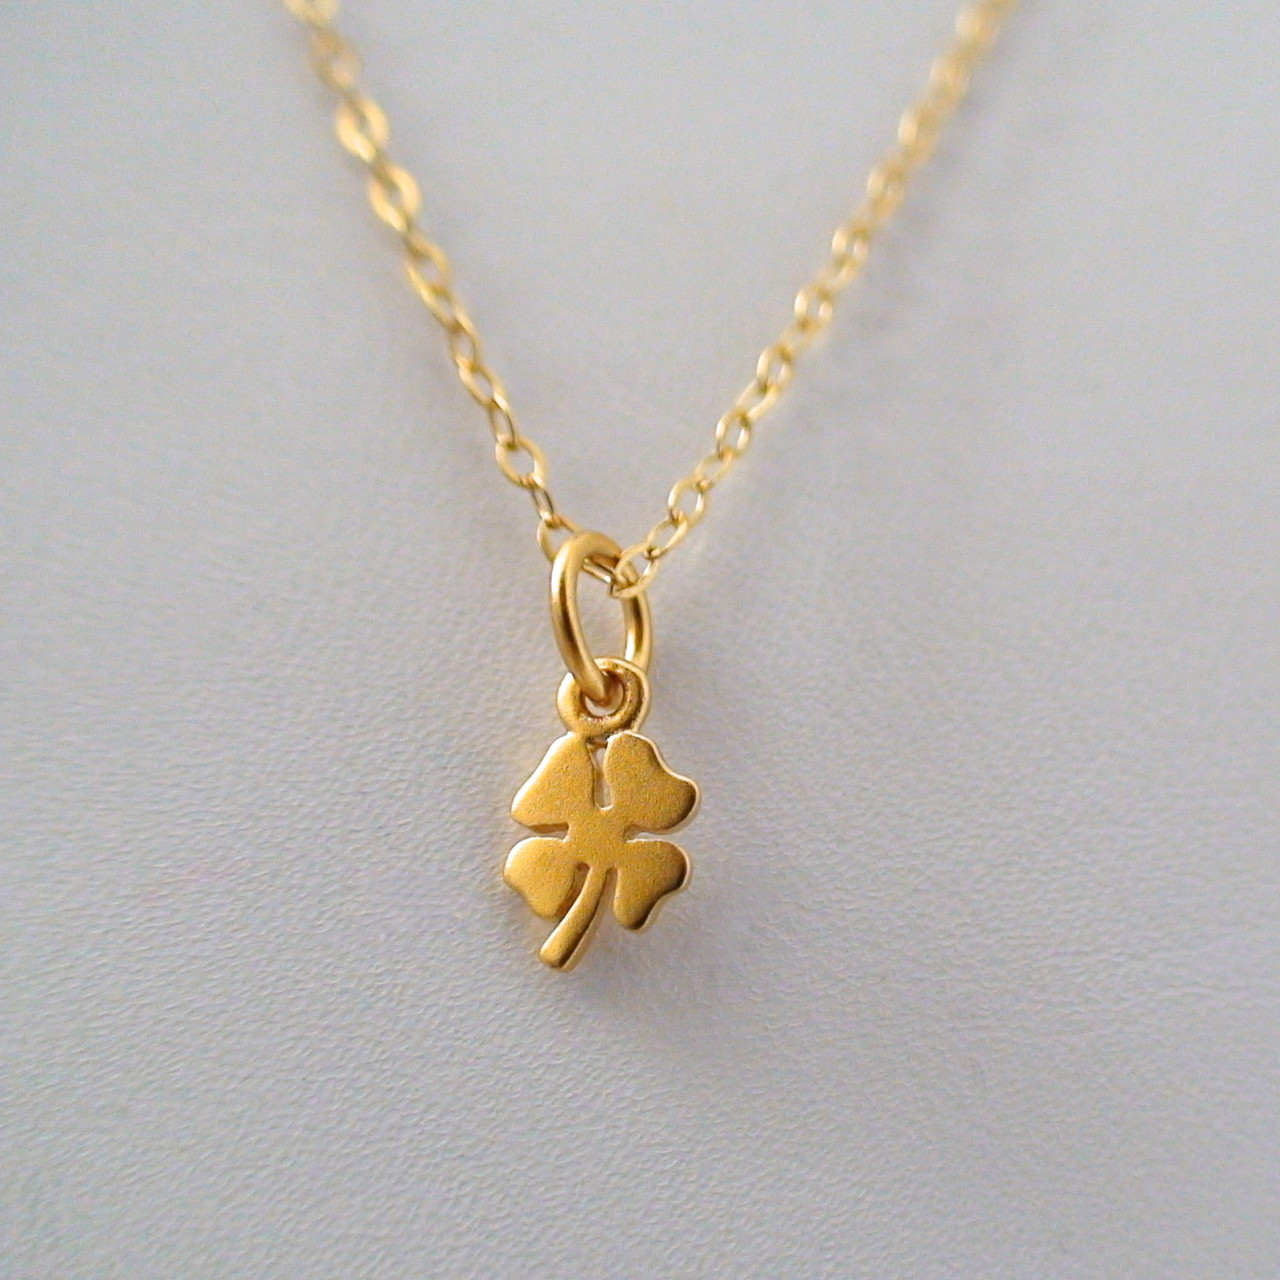 trim clover bridesmaid leaf jewelry pin via quatrefoil small by etsy smallbluethings gift modern necklace white with gold simple colored